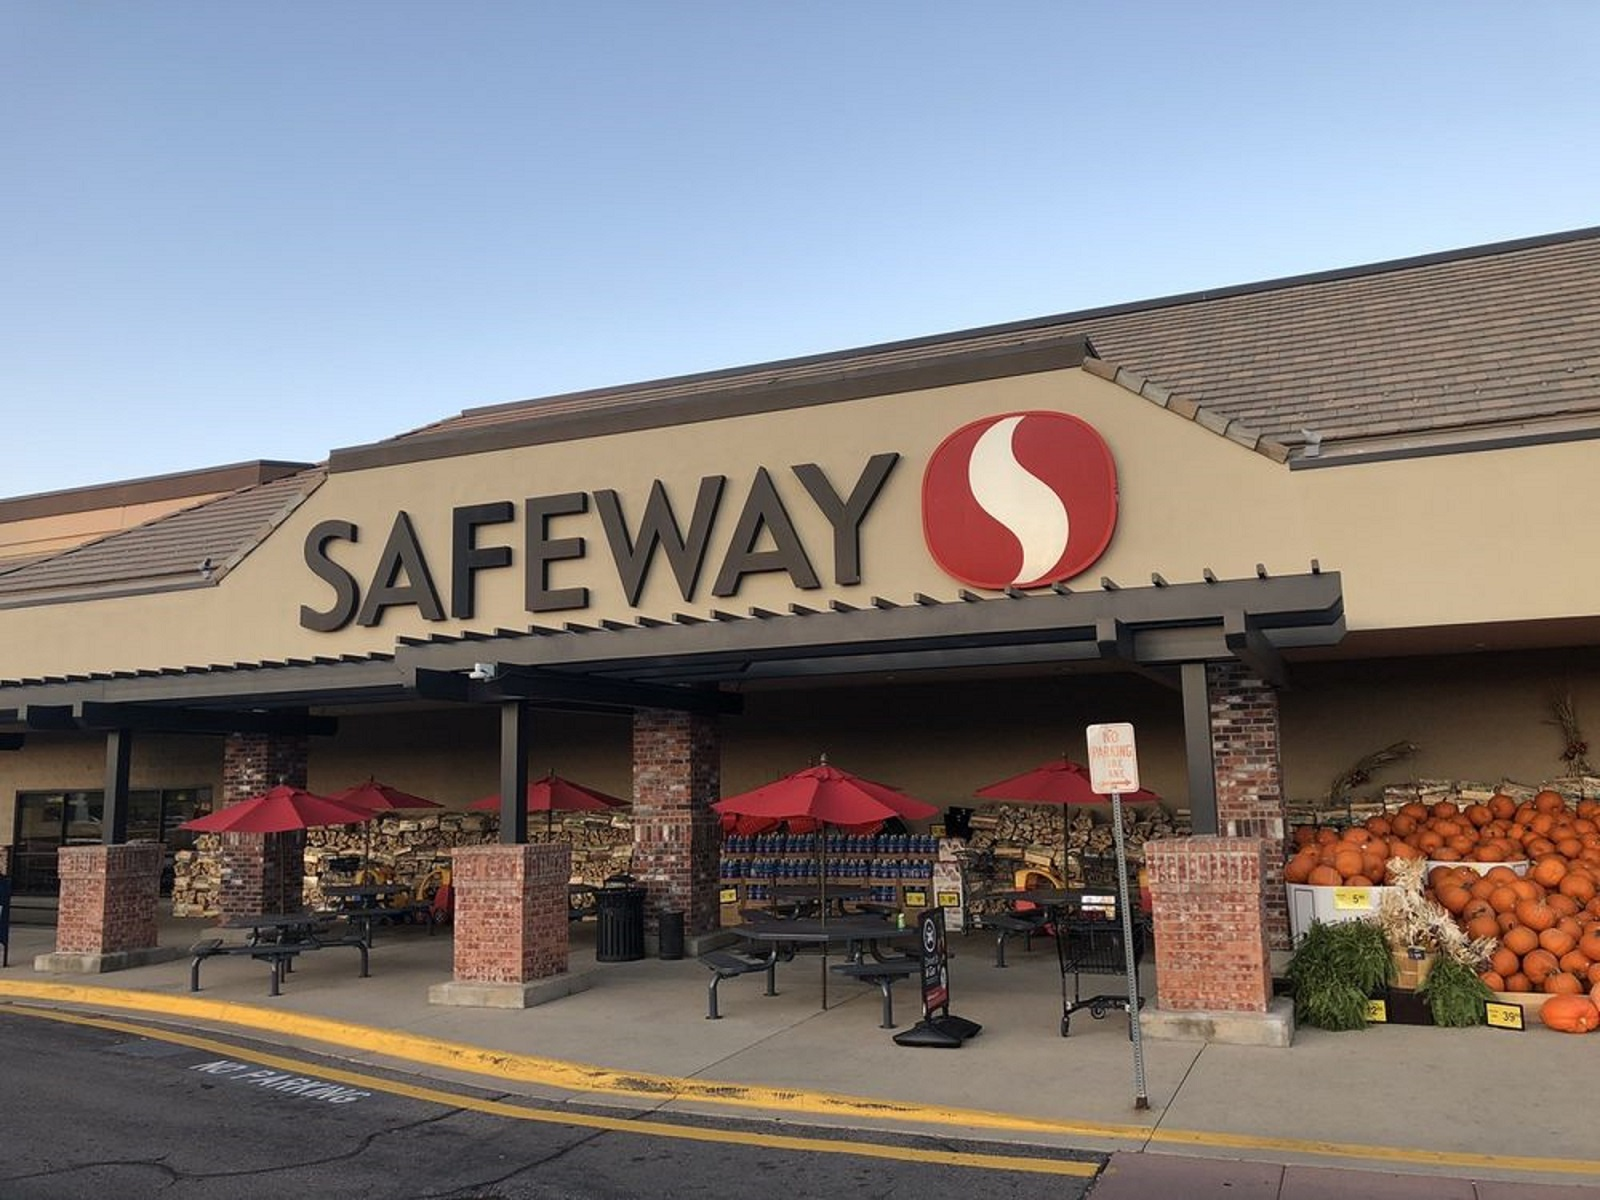 The Boulder Group Arranges Sale of a $14.7 Million Net Lease Safeway Grocery Property